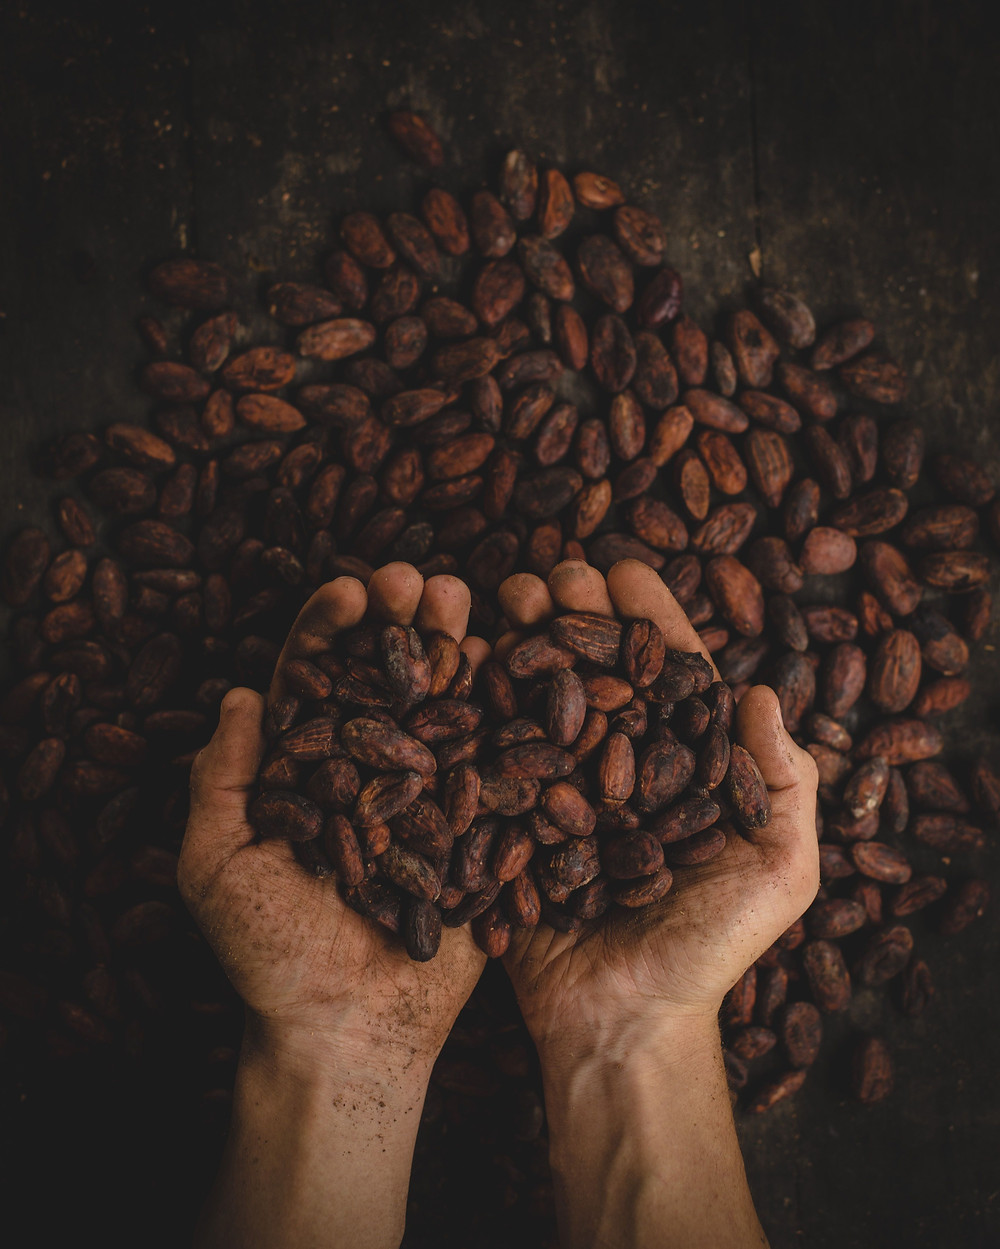 pile-of-roasted-cocoa-beans-in-palms